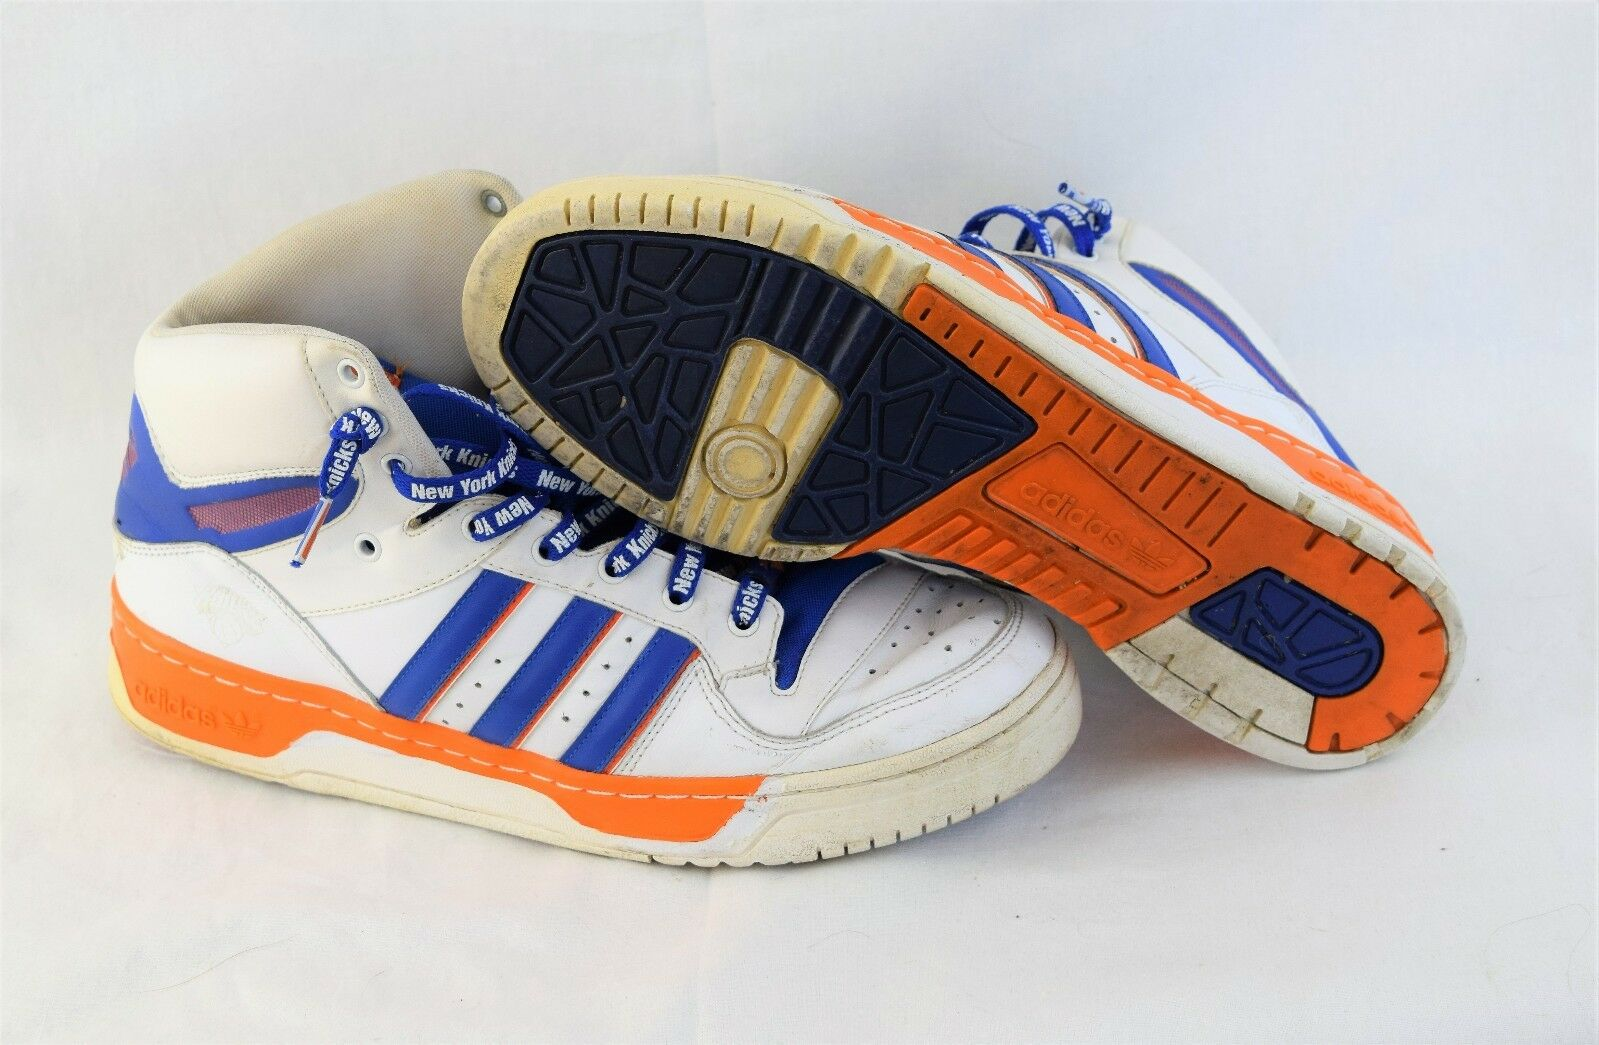 Mens Size 11 OG 2008 Adidas 789002 TreFoil Retro Ewing New York Knicks Sneakers